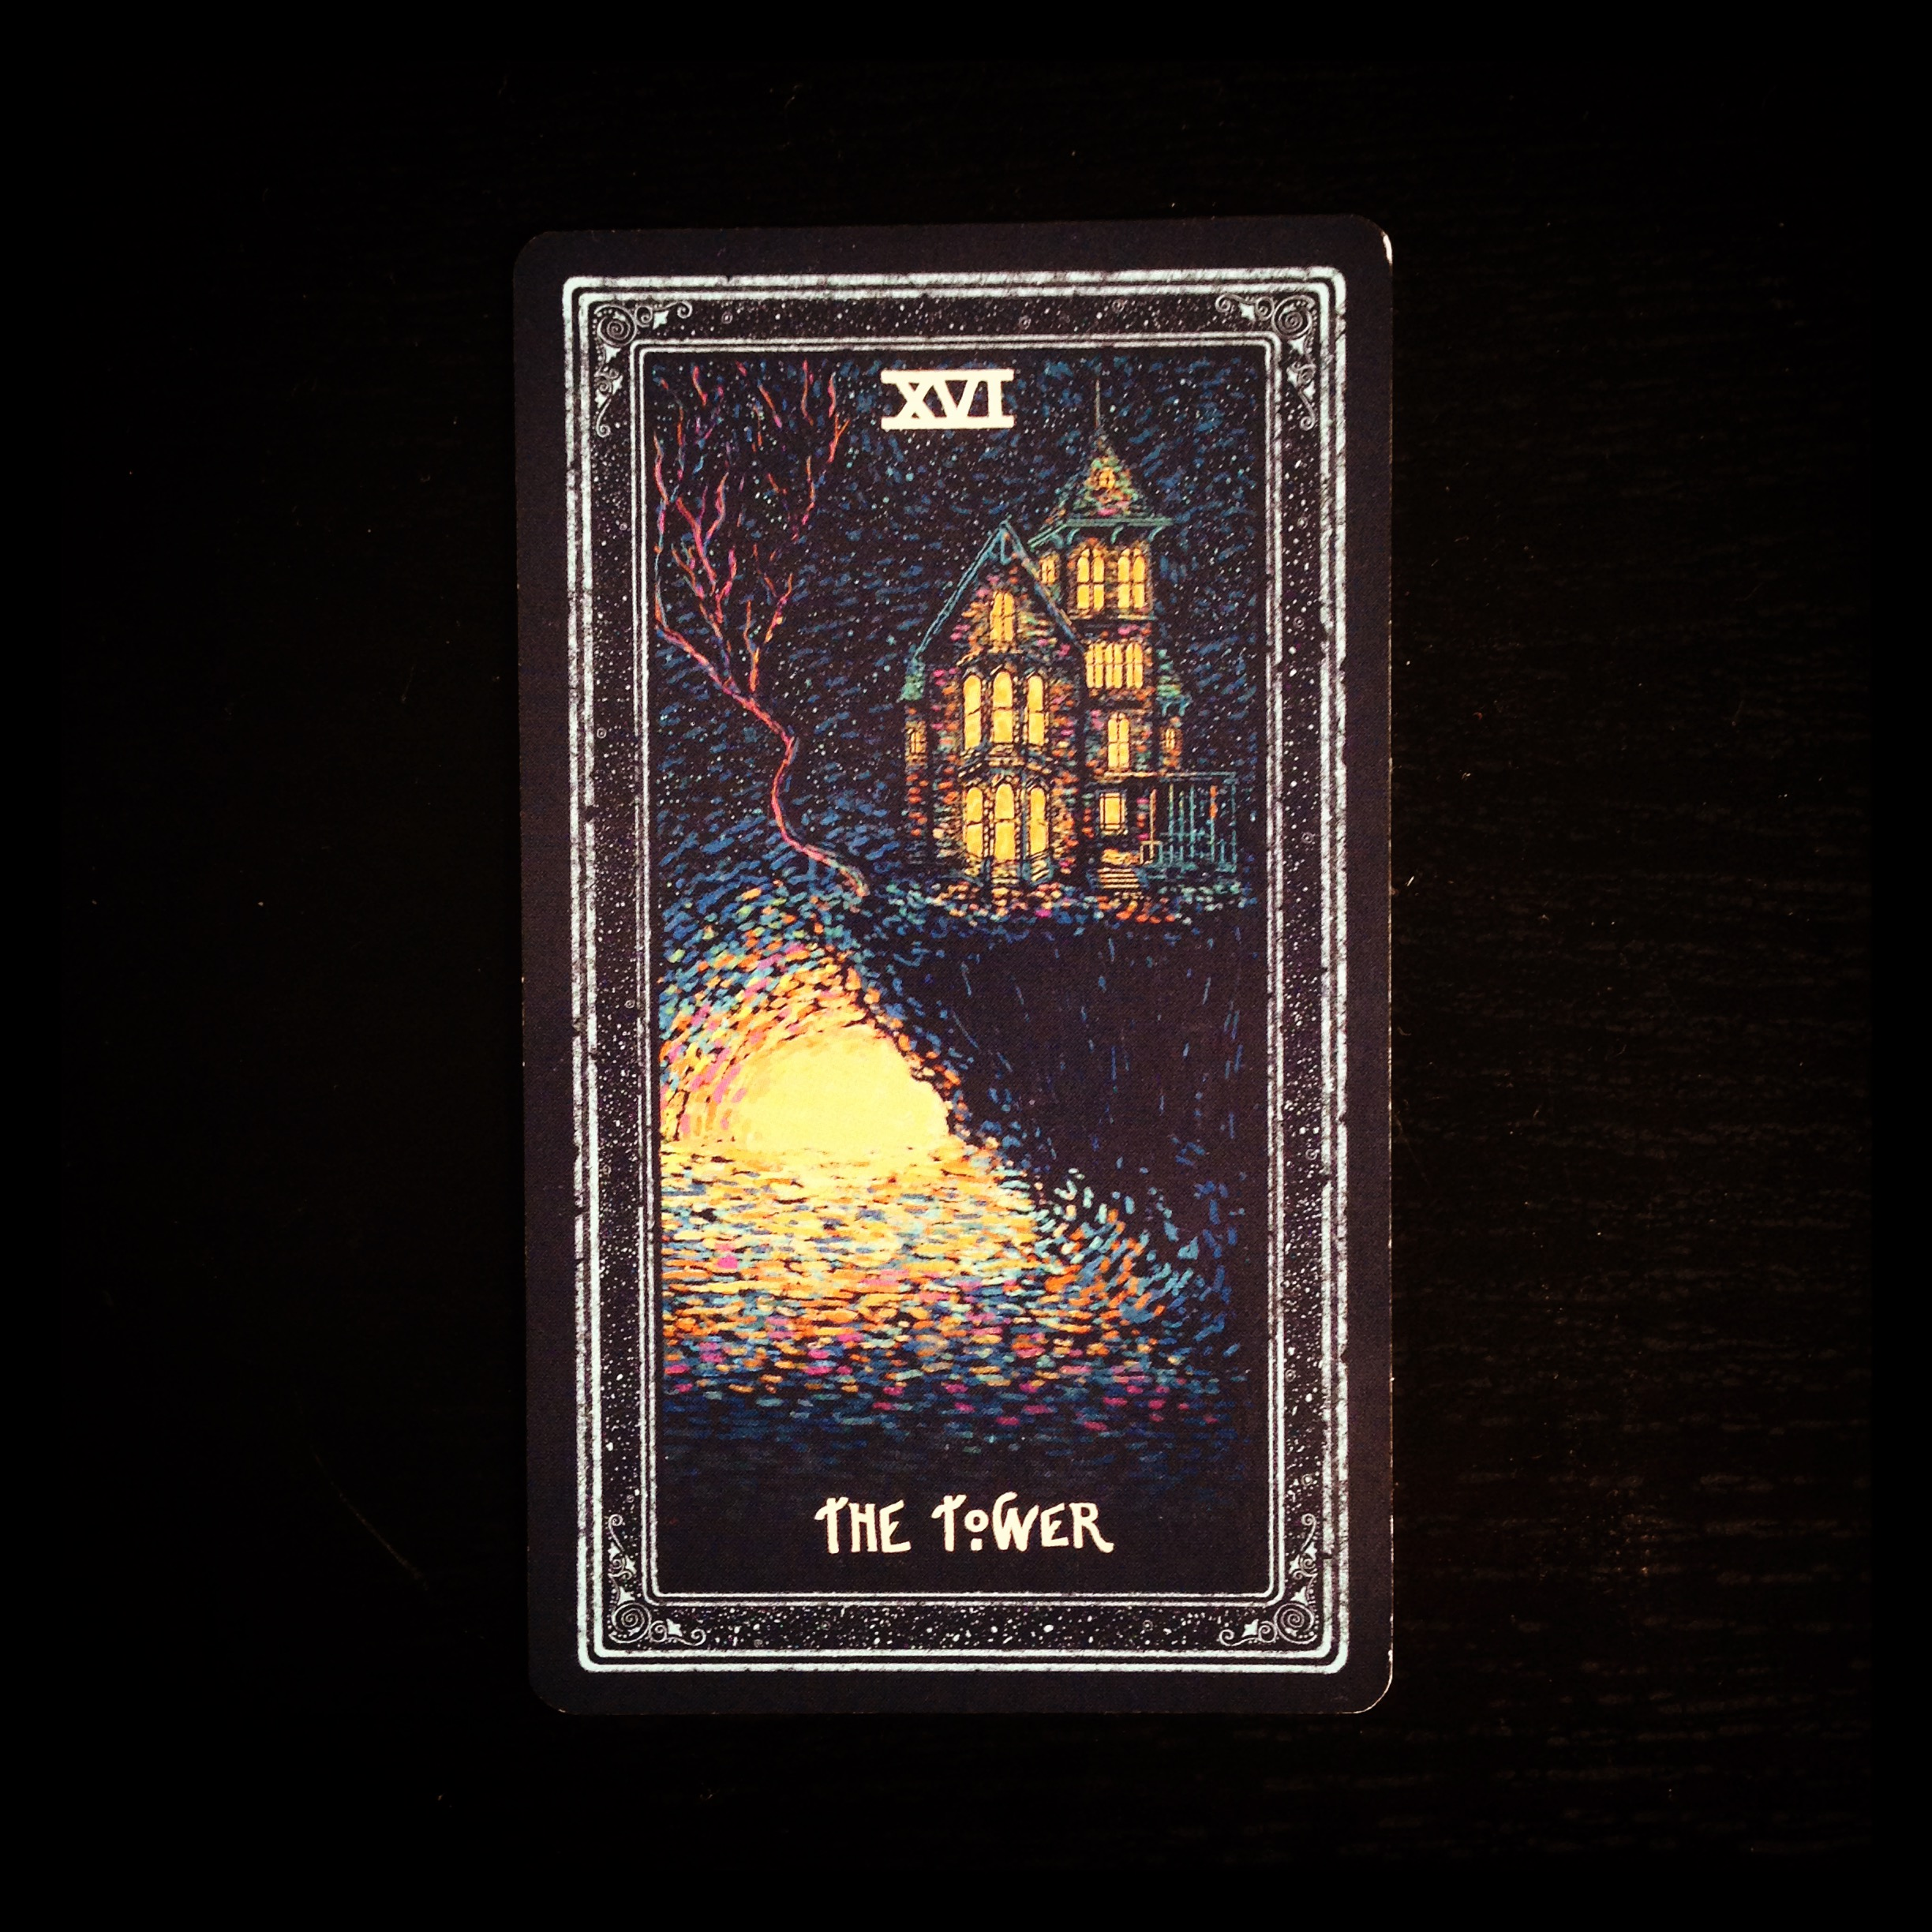 XVI - The Tower, from James R. Eads' Prismavisions Tarot